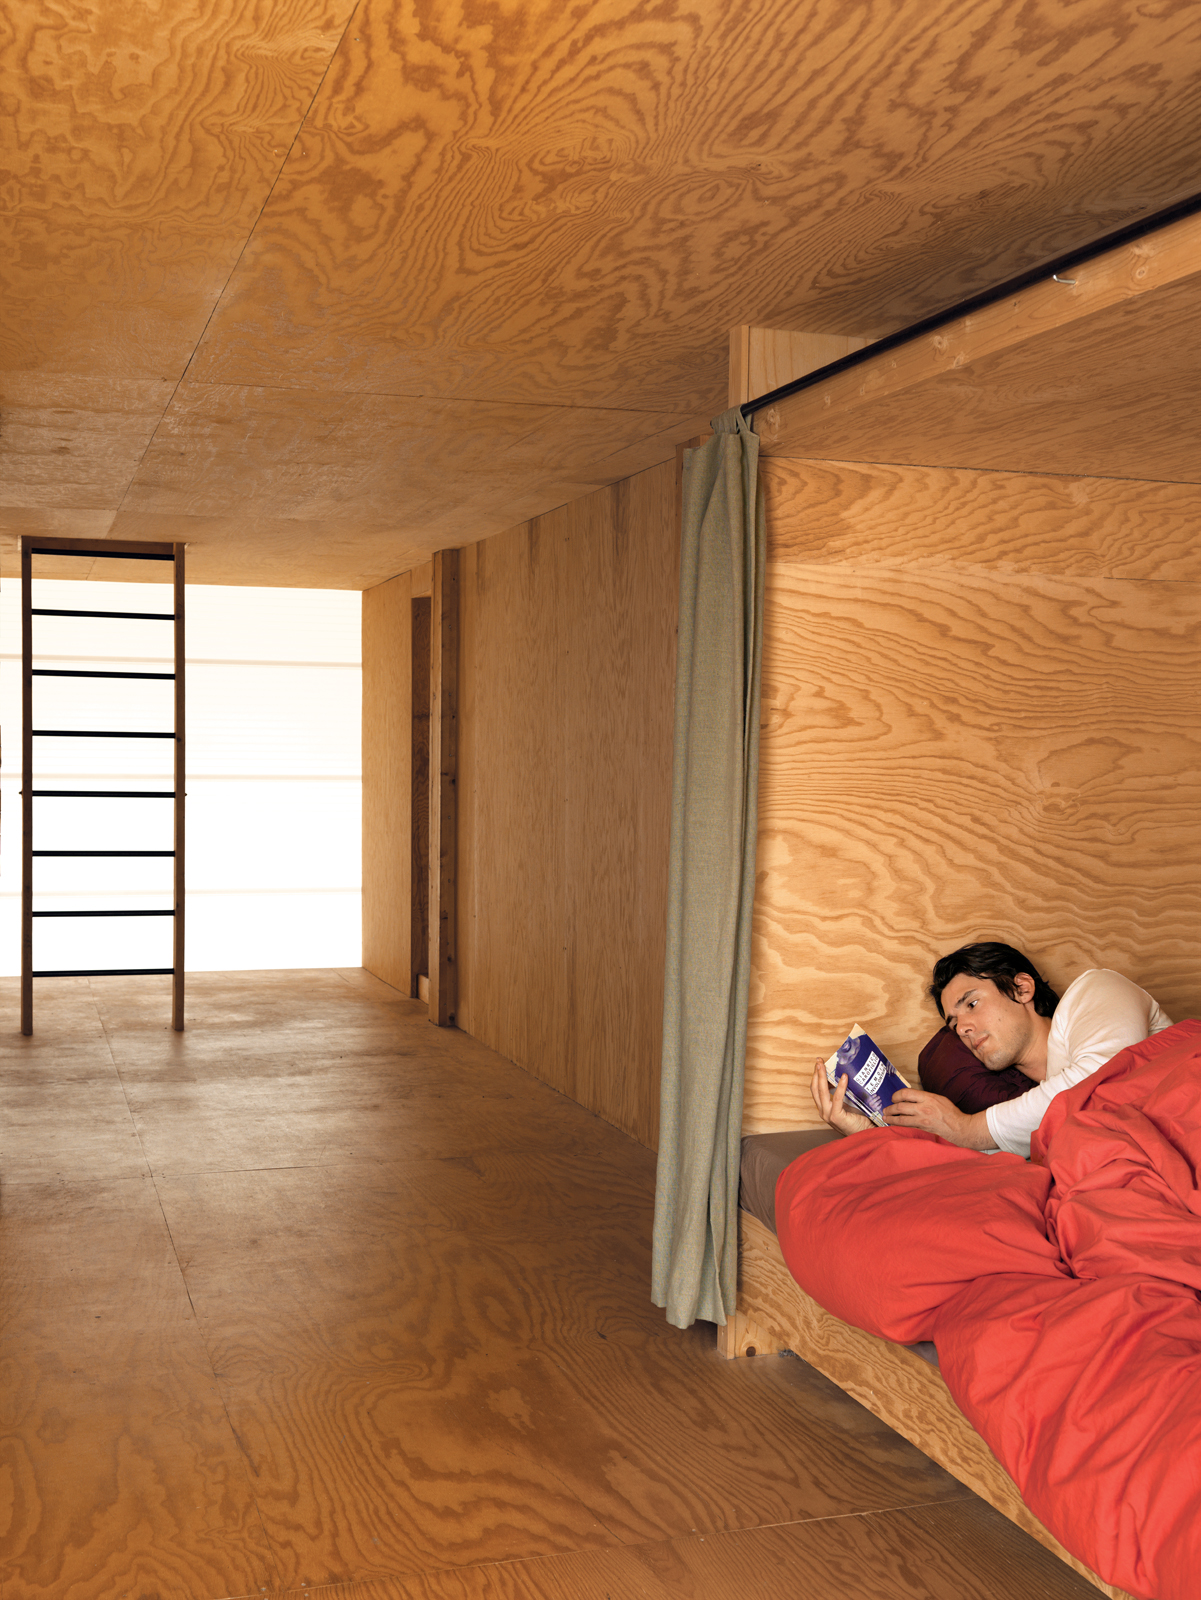 The second floor houses three lits bretons, boxlike compartments where the curtains can be drawn to close sleepers off from the world. Inside, each has a built-in shelf  for personal belongings and a favorite read.